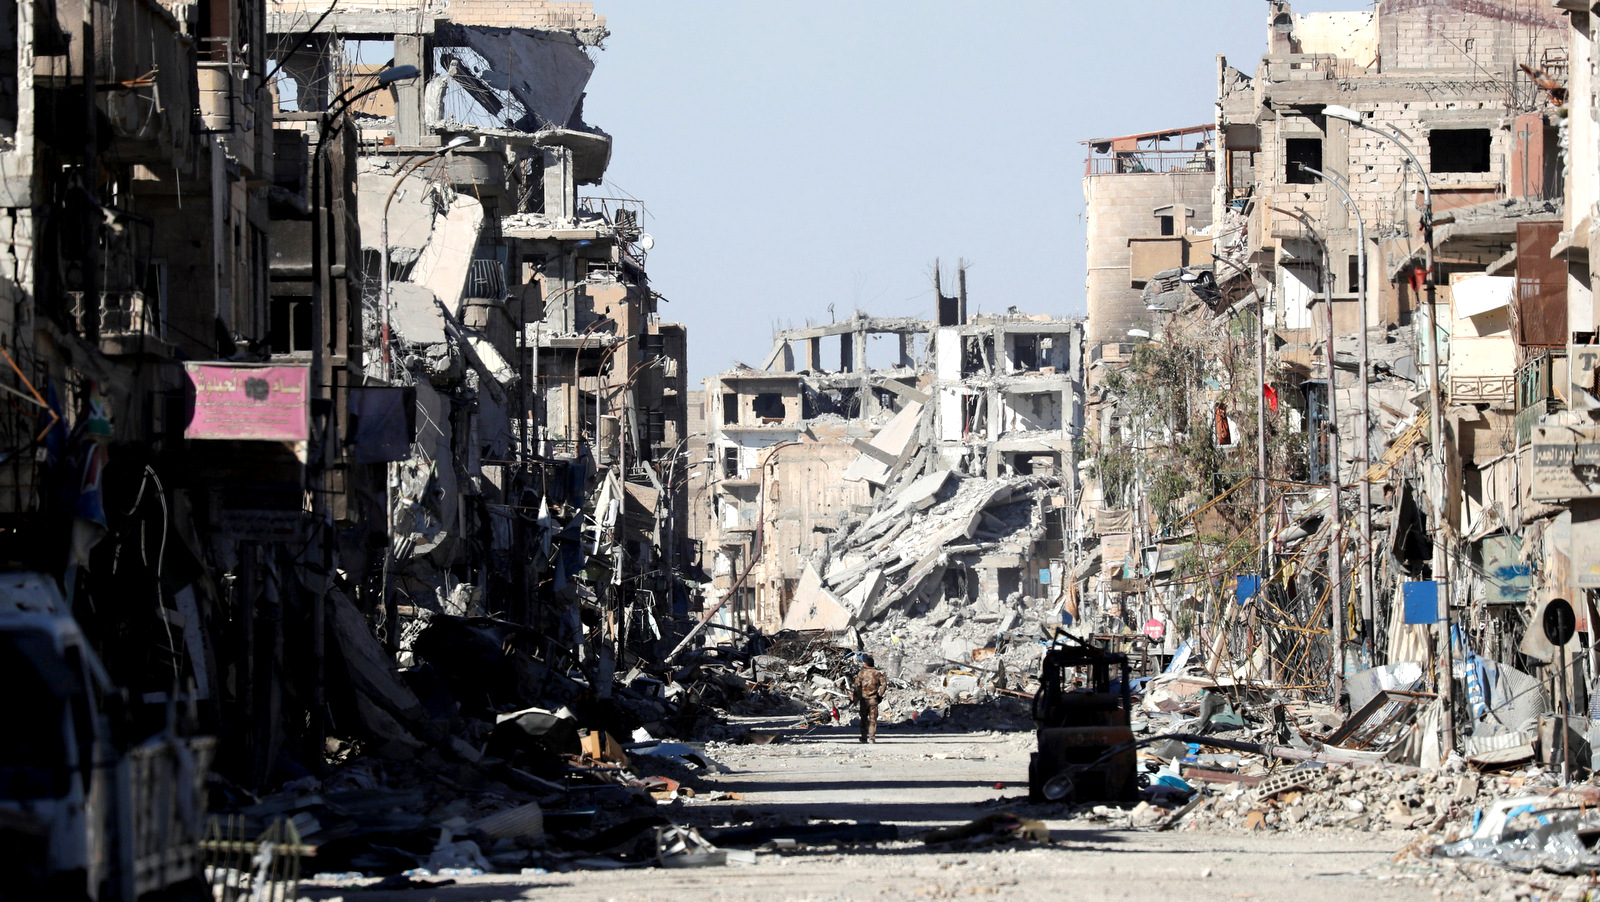 A U.S.-backed Syrian fighter from the SDF stands amidst the ruins of buildings near the Clock Square in Raqqa, Syria October 18, 2017. (Erik De Castro/Reuters)